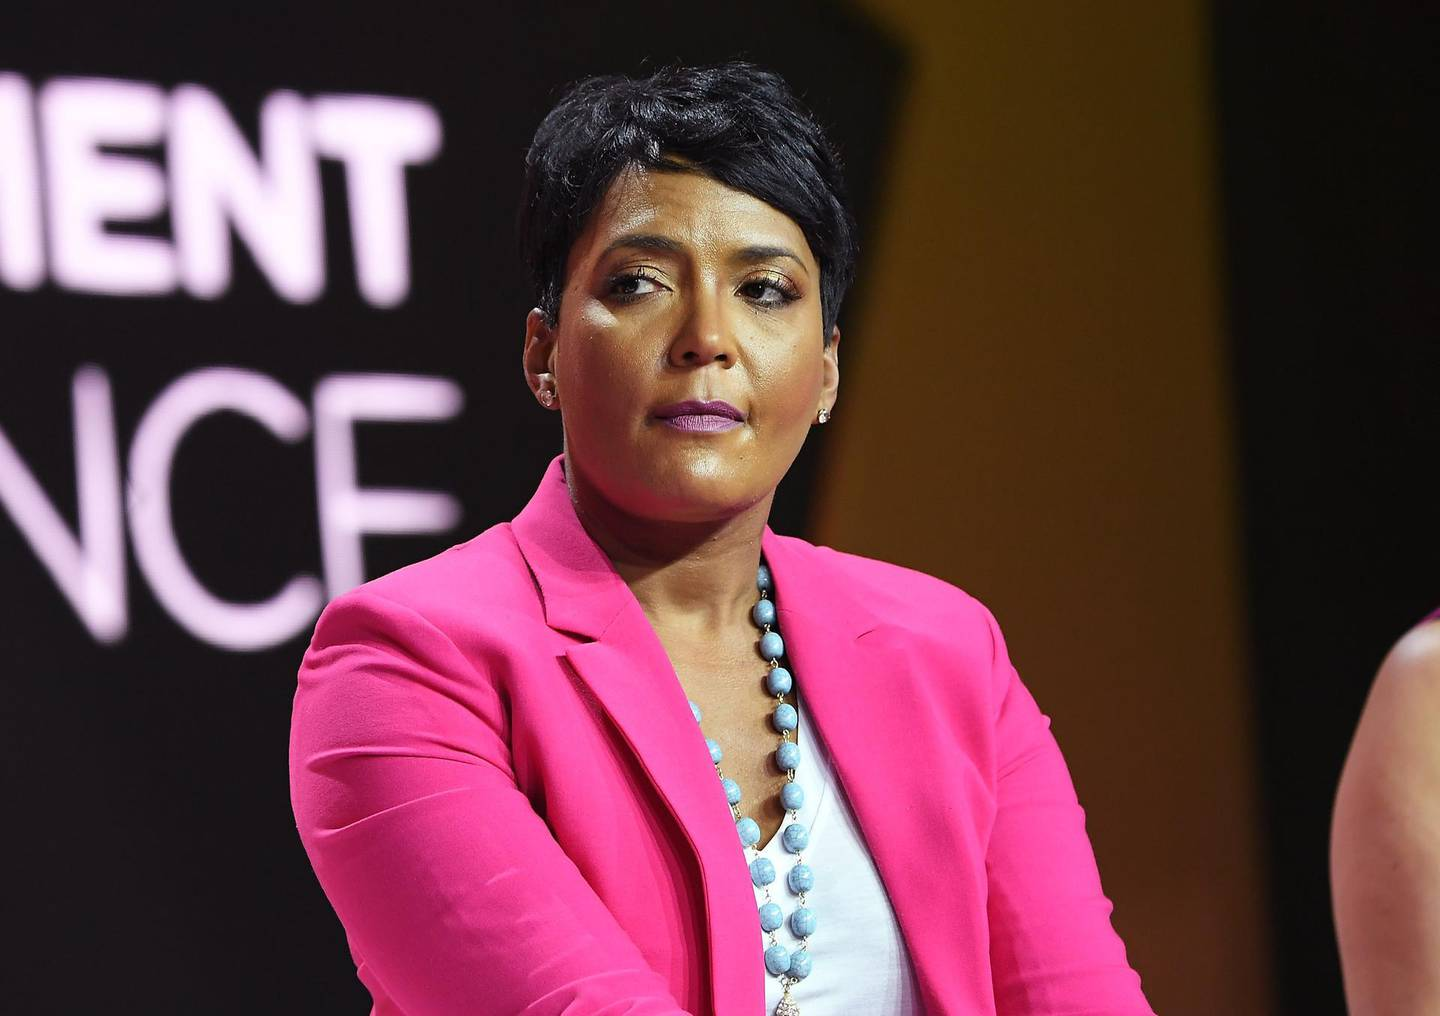 (FILES) In this file photo taken on July 06, 2018 Mayor of Atlanta Keisha Lance Bottoms speaks onstage during the 2018 Essence Festival presented by Coca-Cola at Ernest N. Morial Convention Center in New Orleans, Louisiana.  Atlanta Mayor Keisha Lance Bottoms has earned praise for her handling of turbulent anti-racism protests, boosting her prospects of becoming Joe Biden's running mate and potentially America's first black female vice president. / AFP / GETTY IMAGES NORTH AMERICA / Paras Griffin